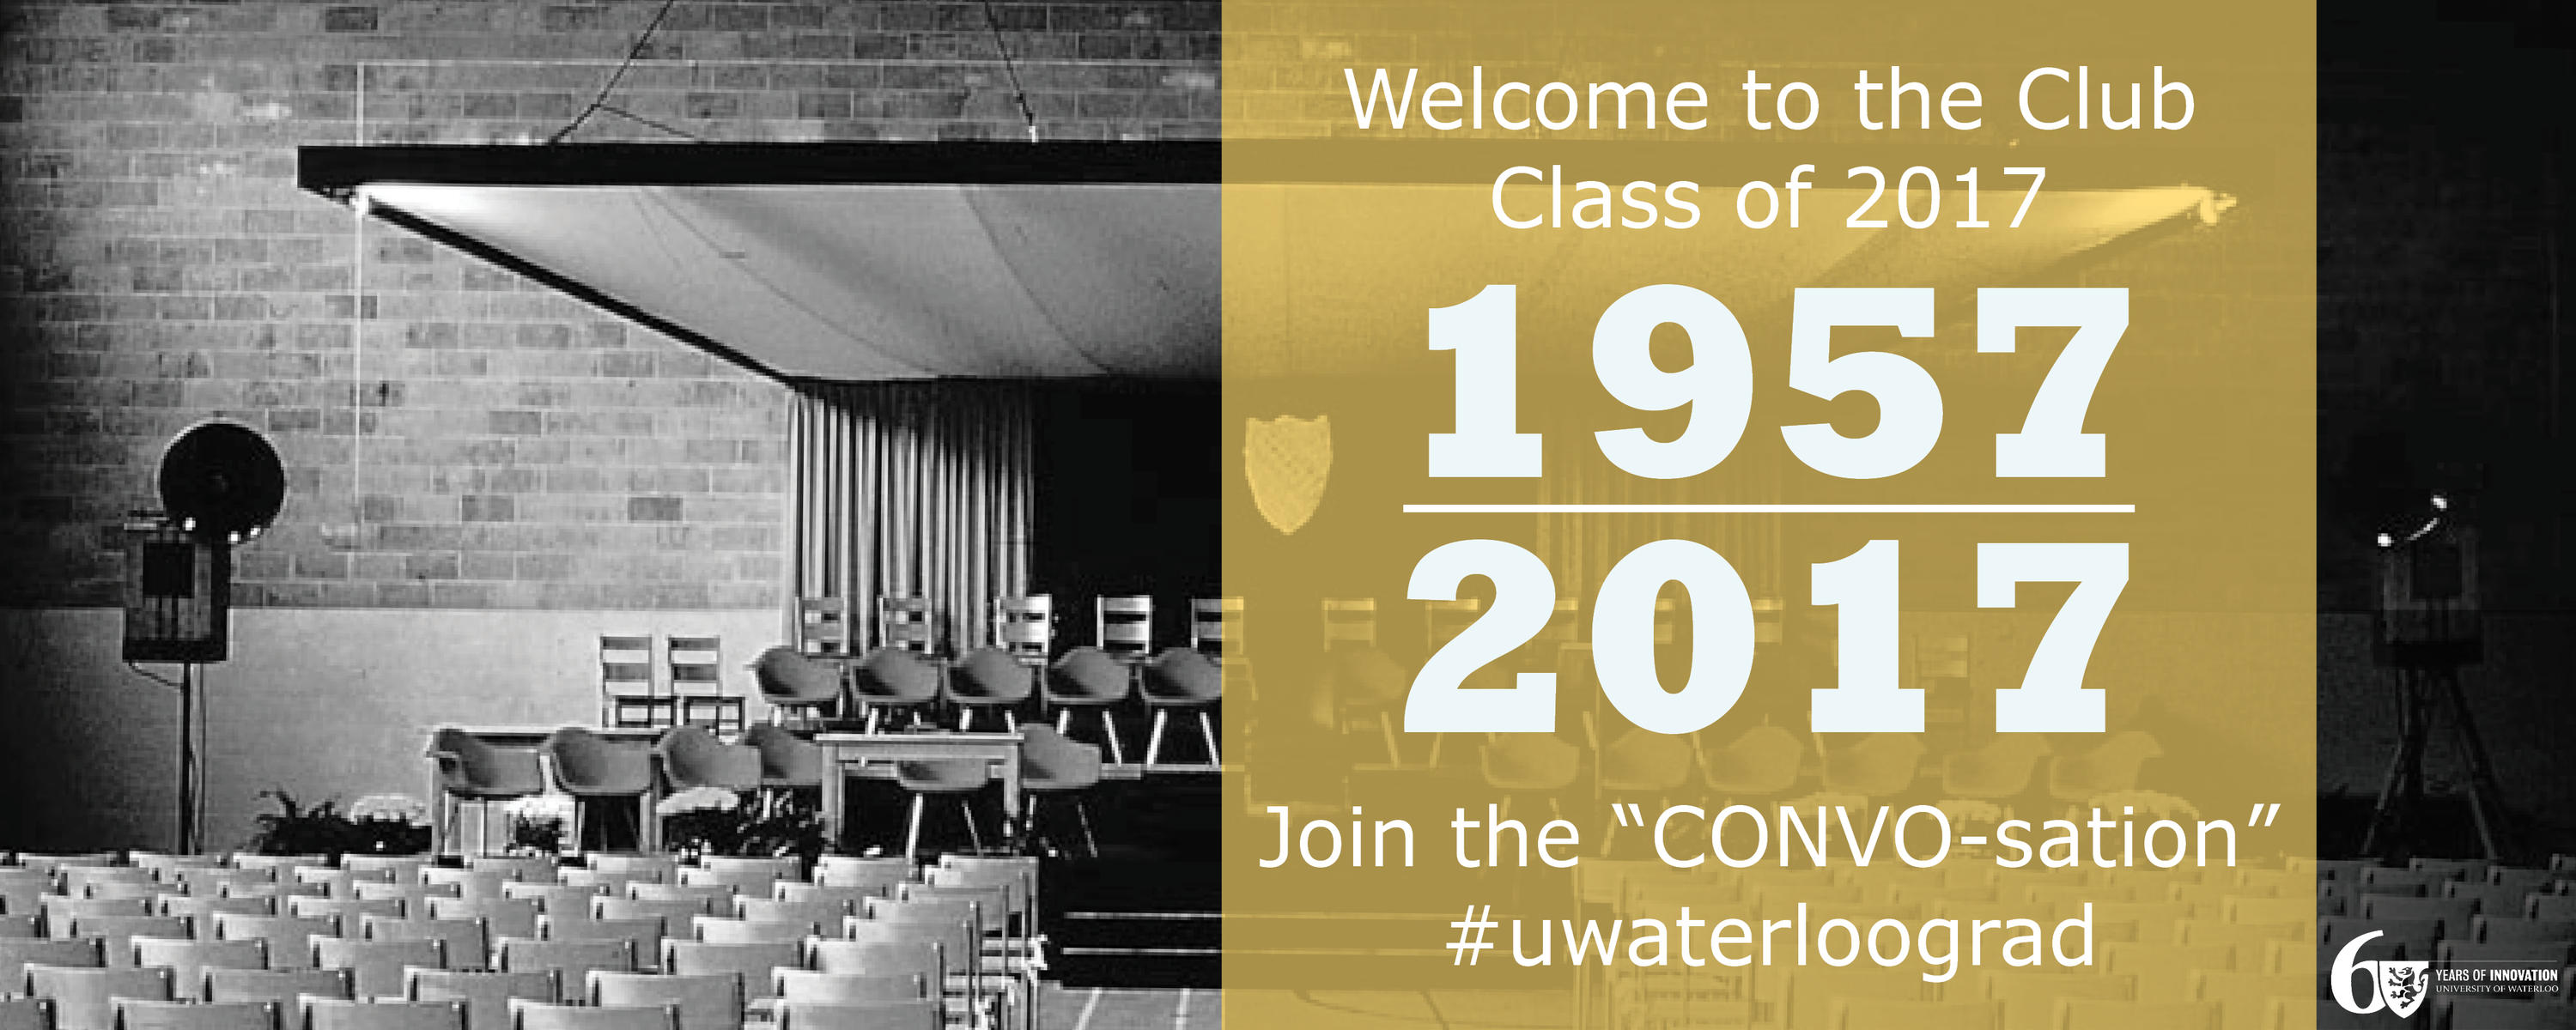 Class of 2017 Join the convo-sation #uwaterloograd